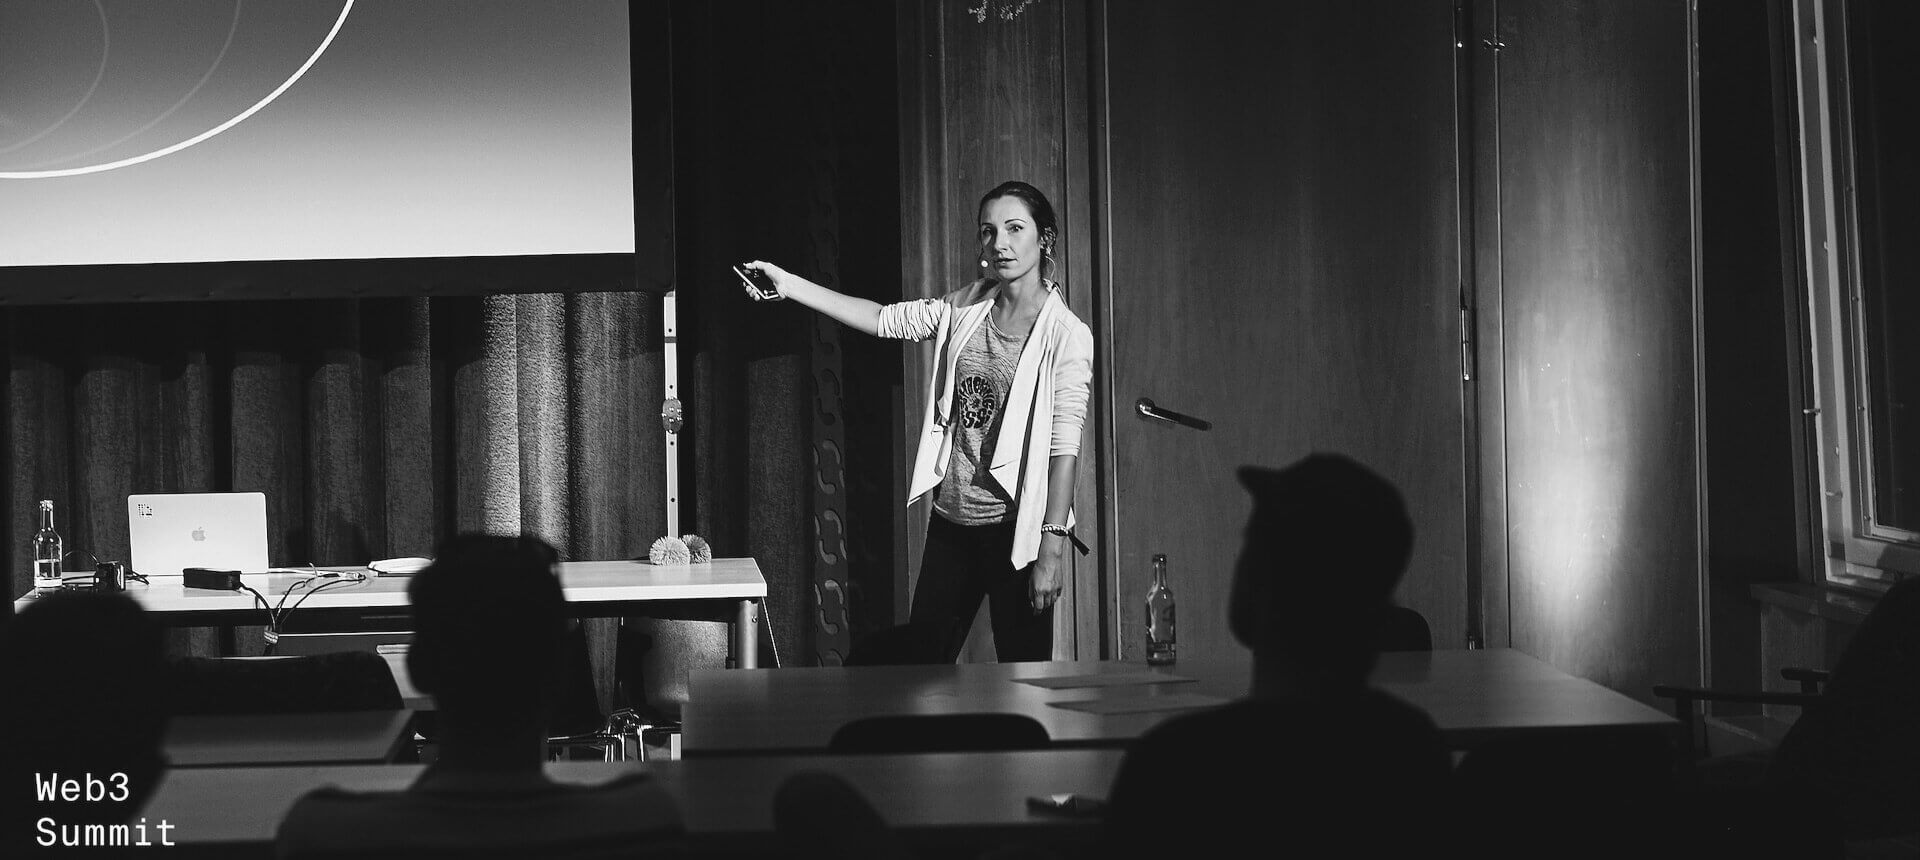 IraNezhynska-Web3summit-bw2-slider